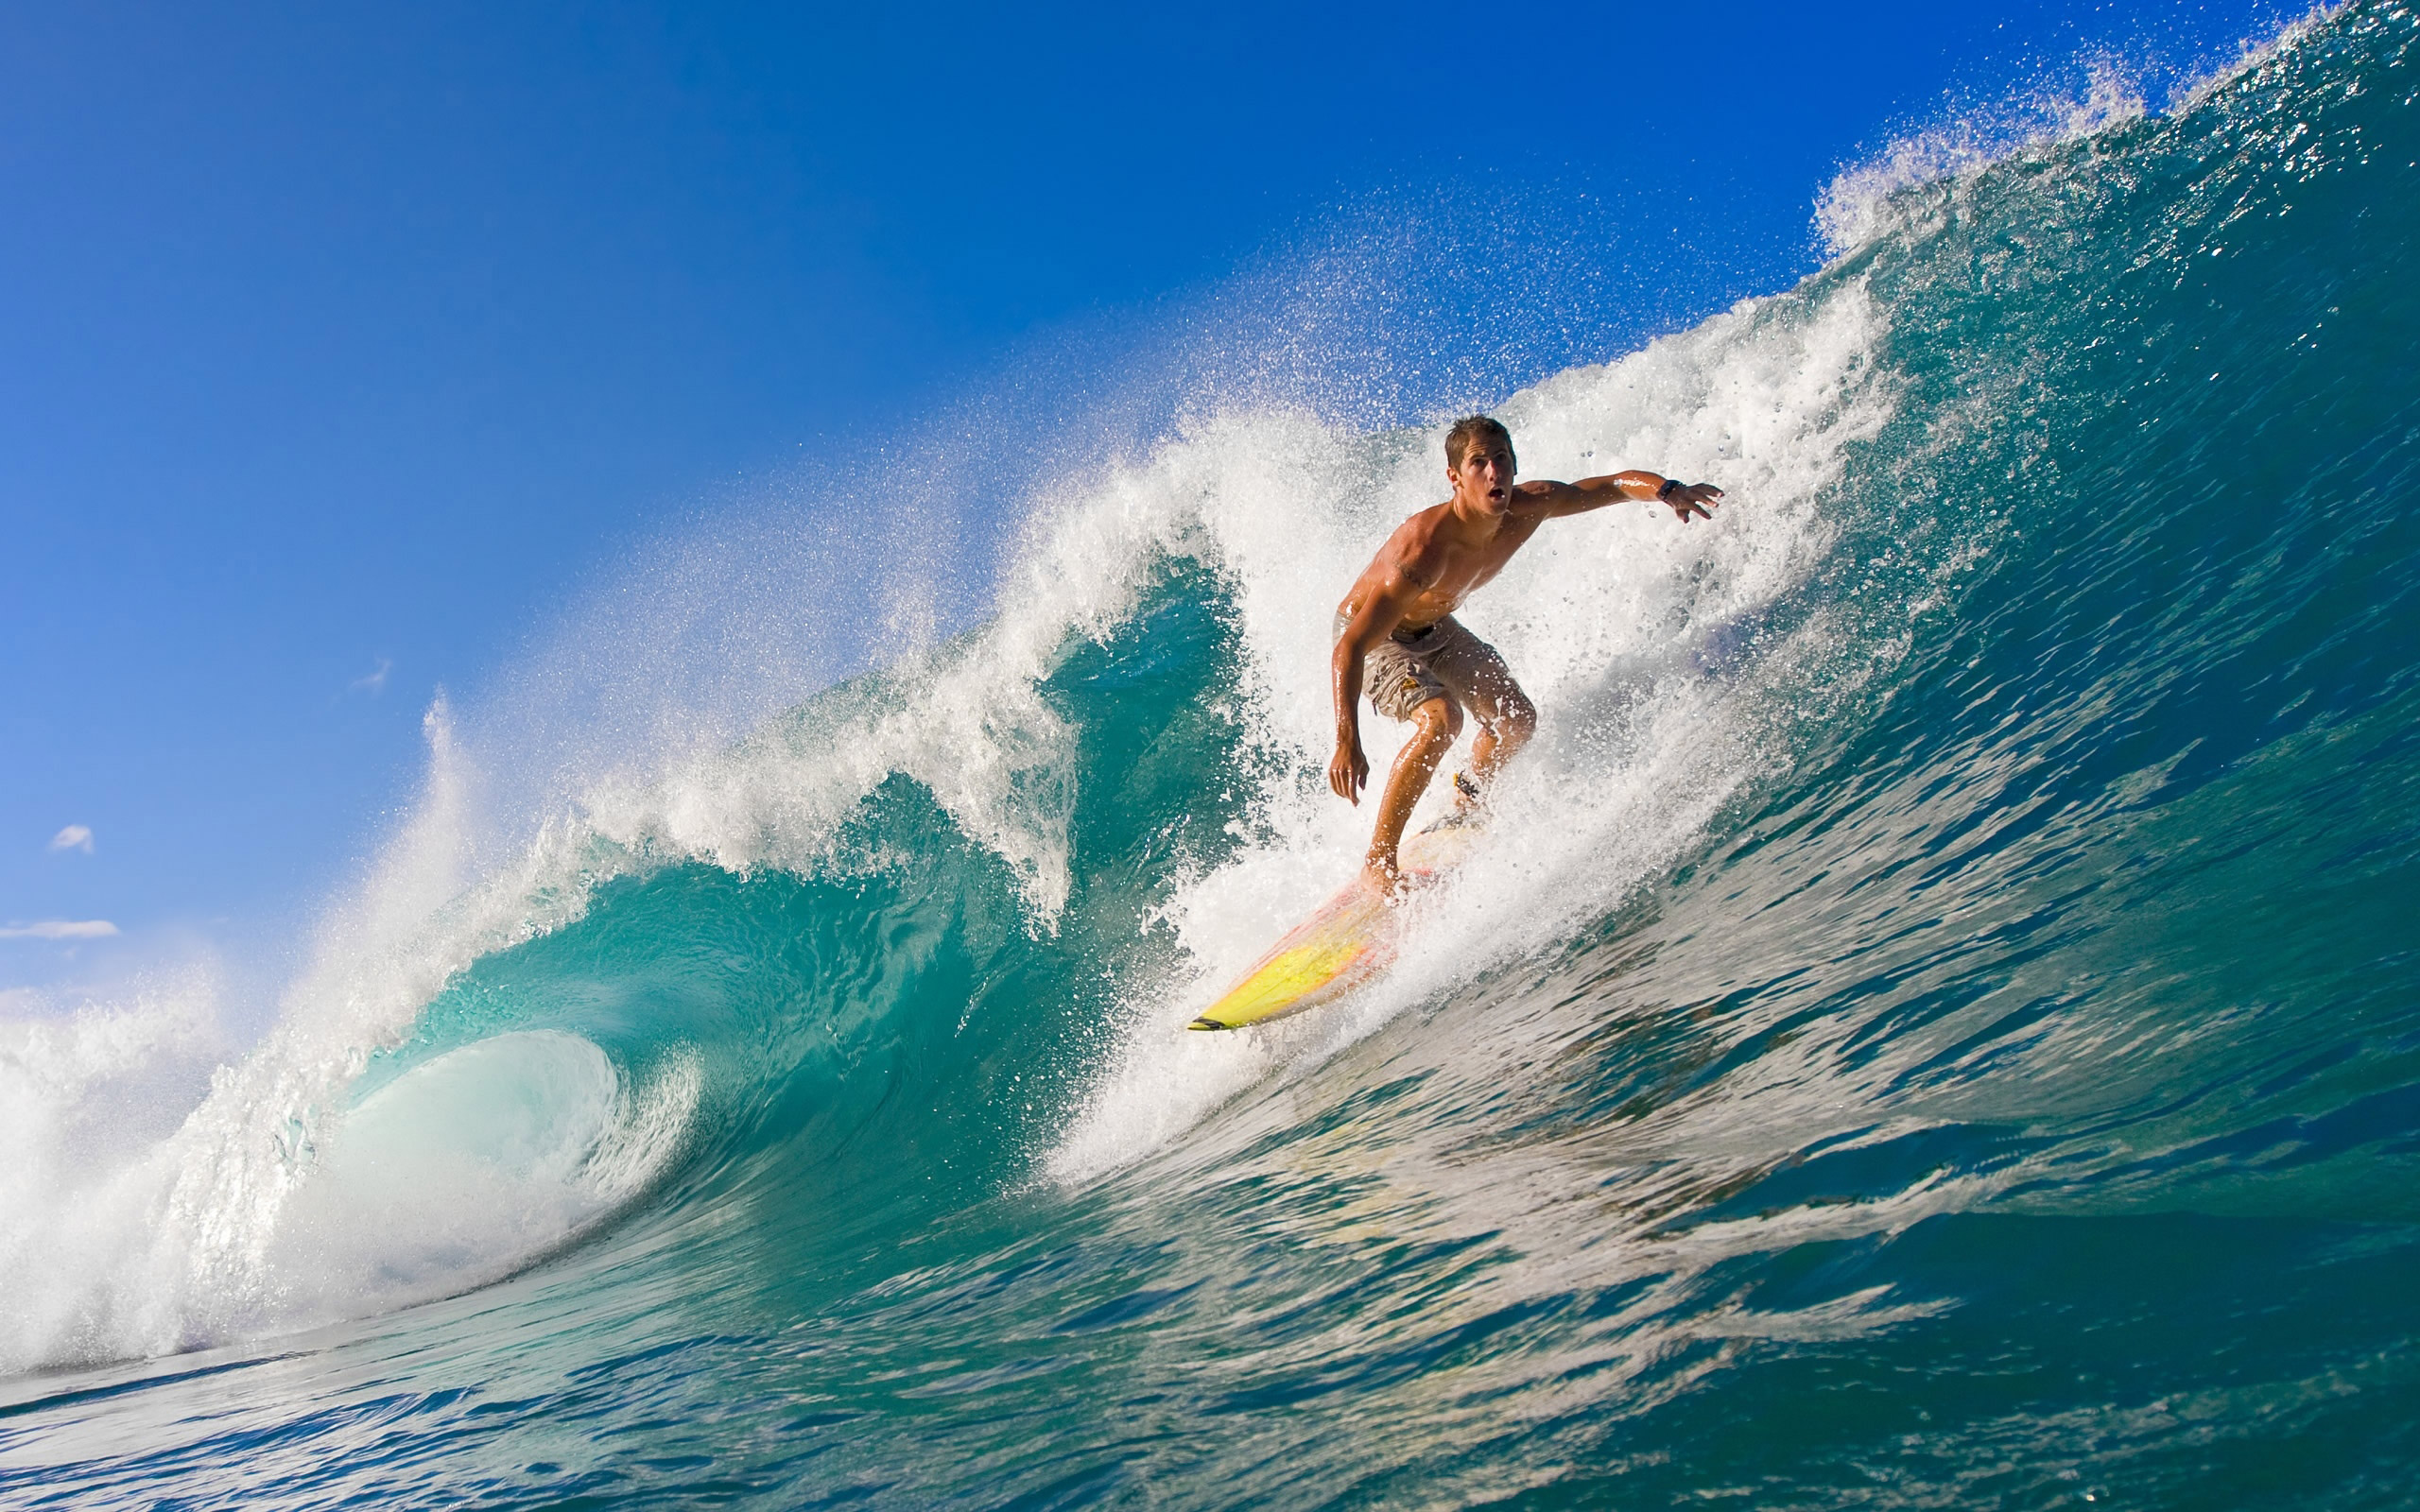 Tablista en surfing - 2560x1600